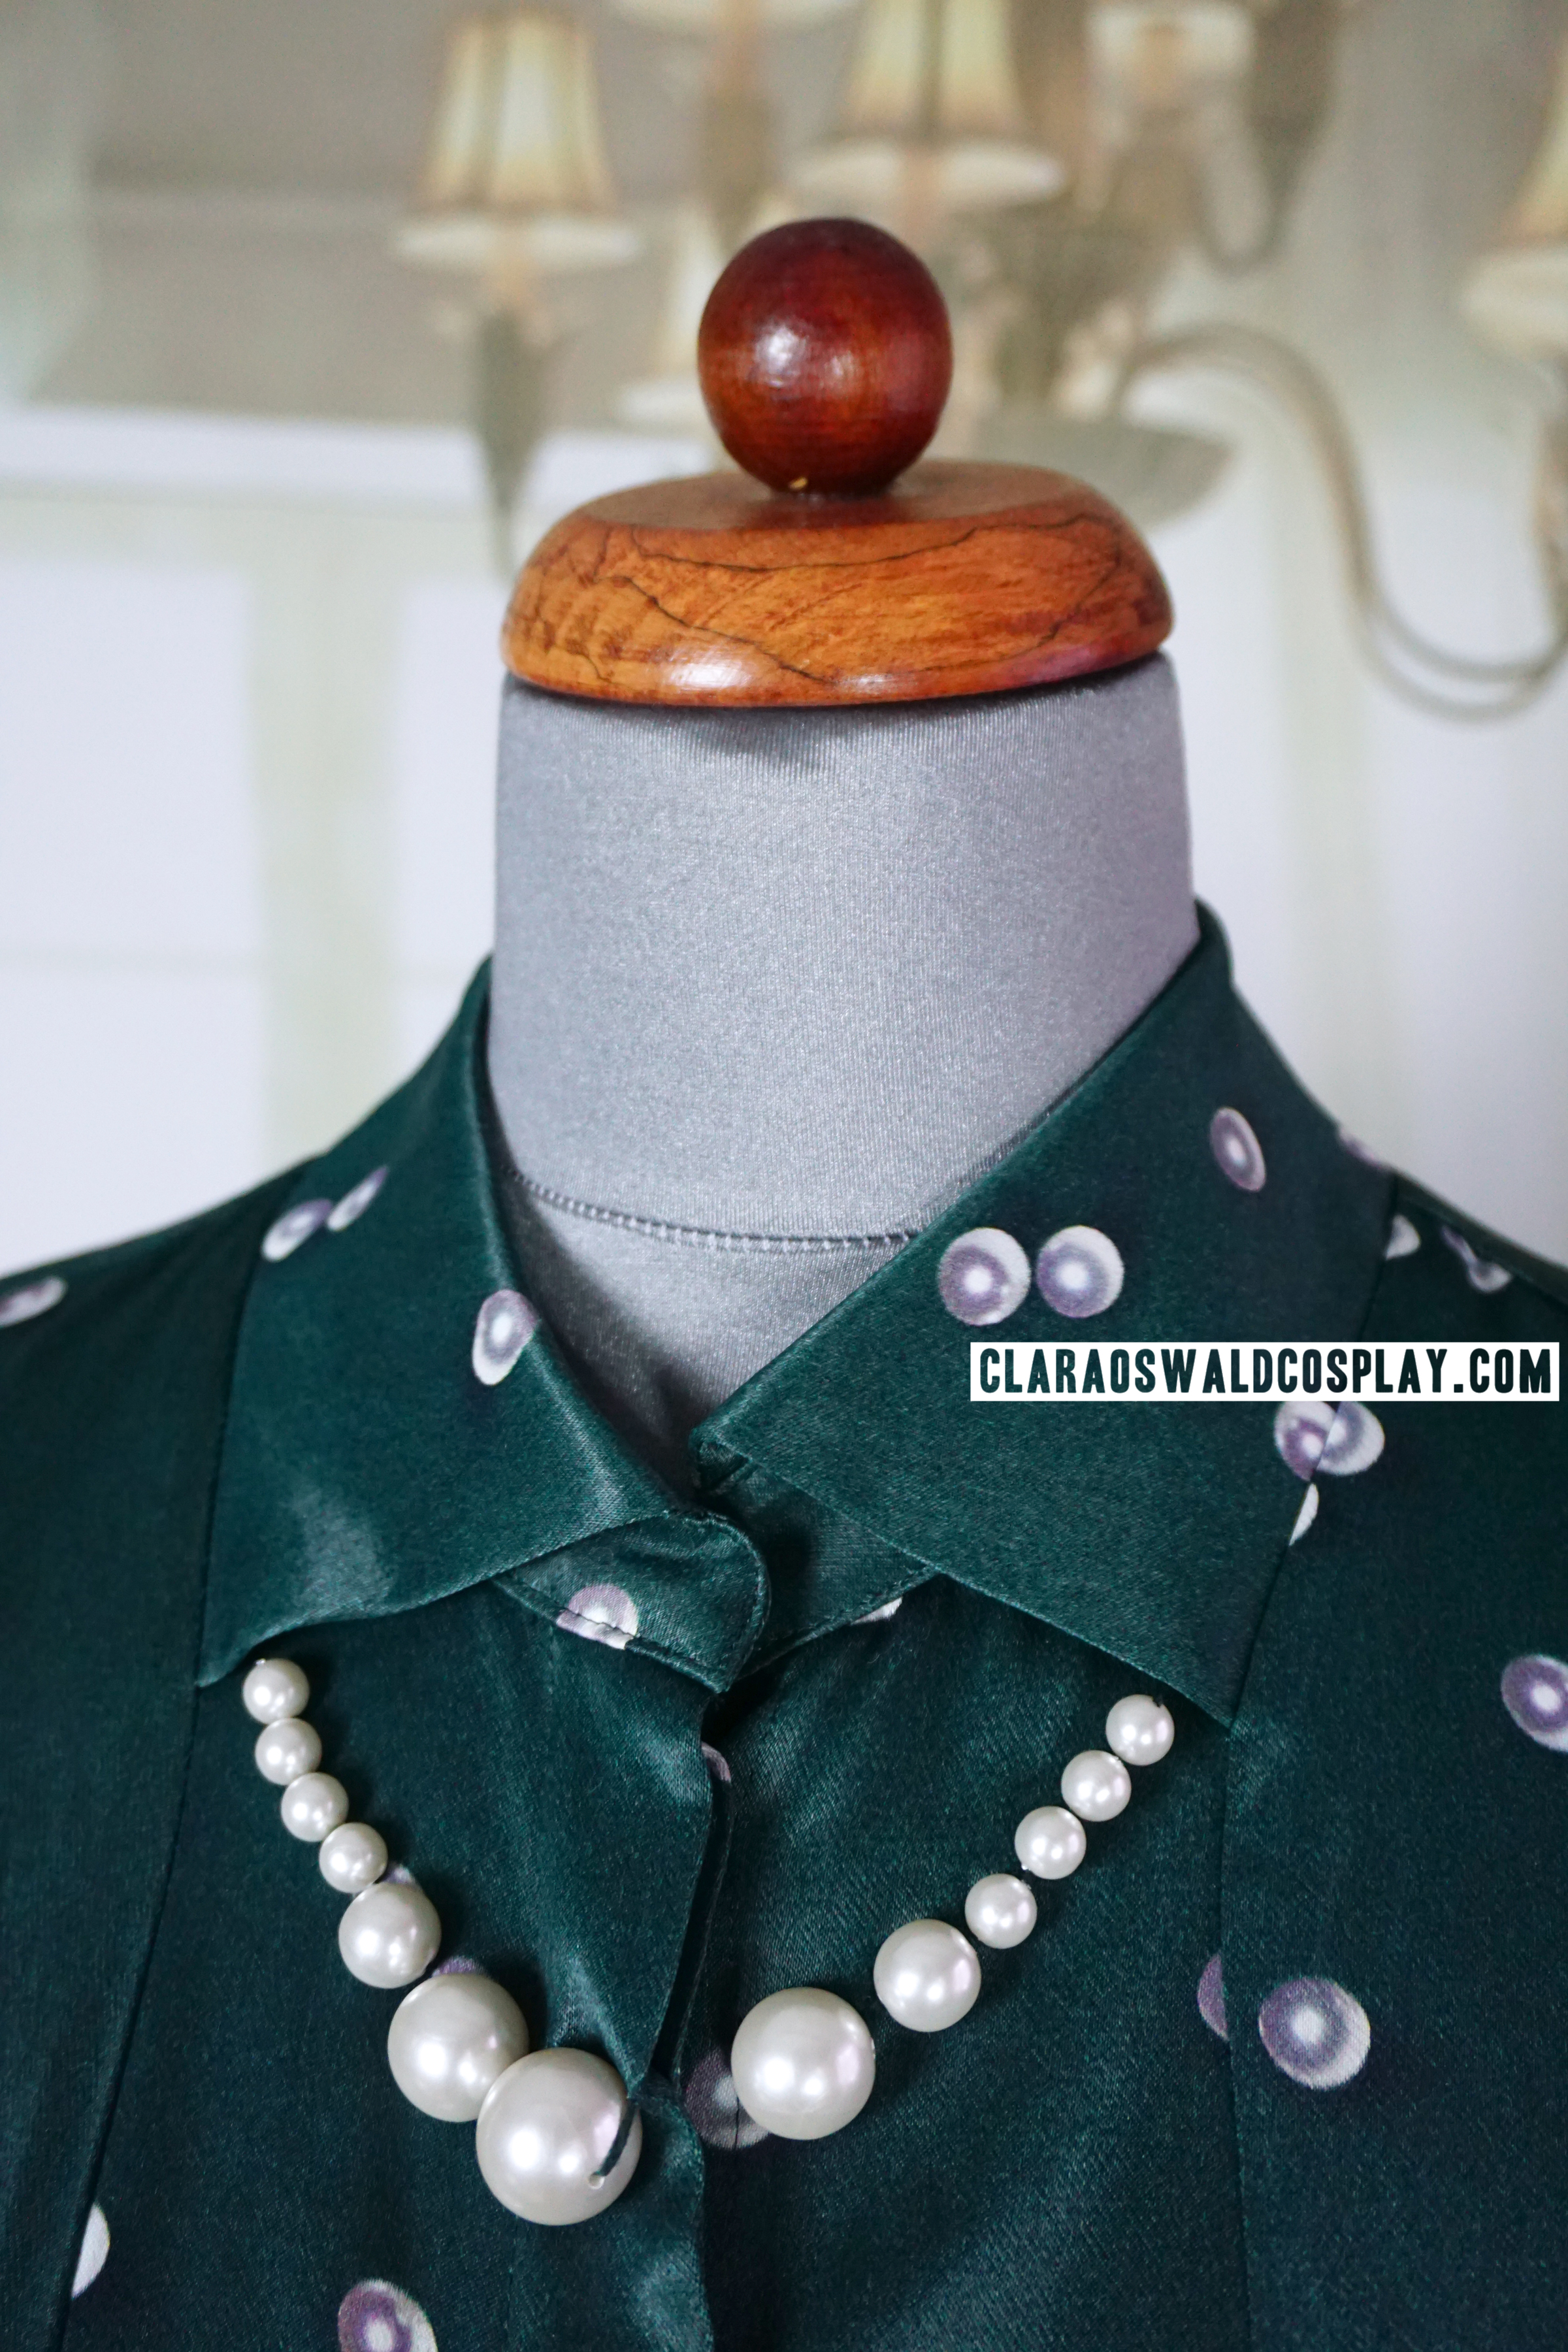 The pearls around the collar are actual not part of the print but sewn on. They were likely taken off by the costume department